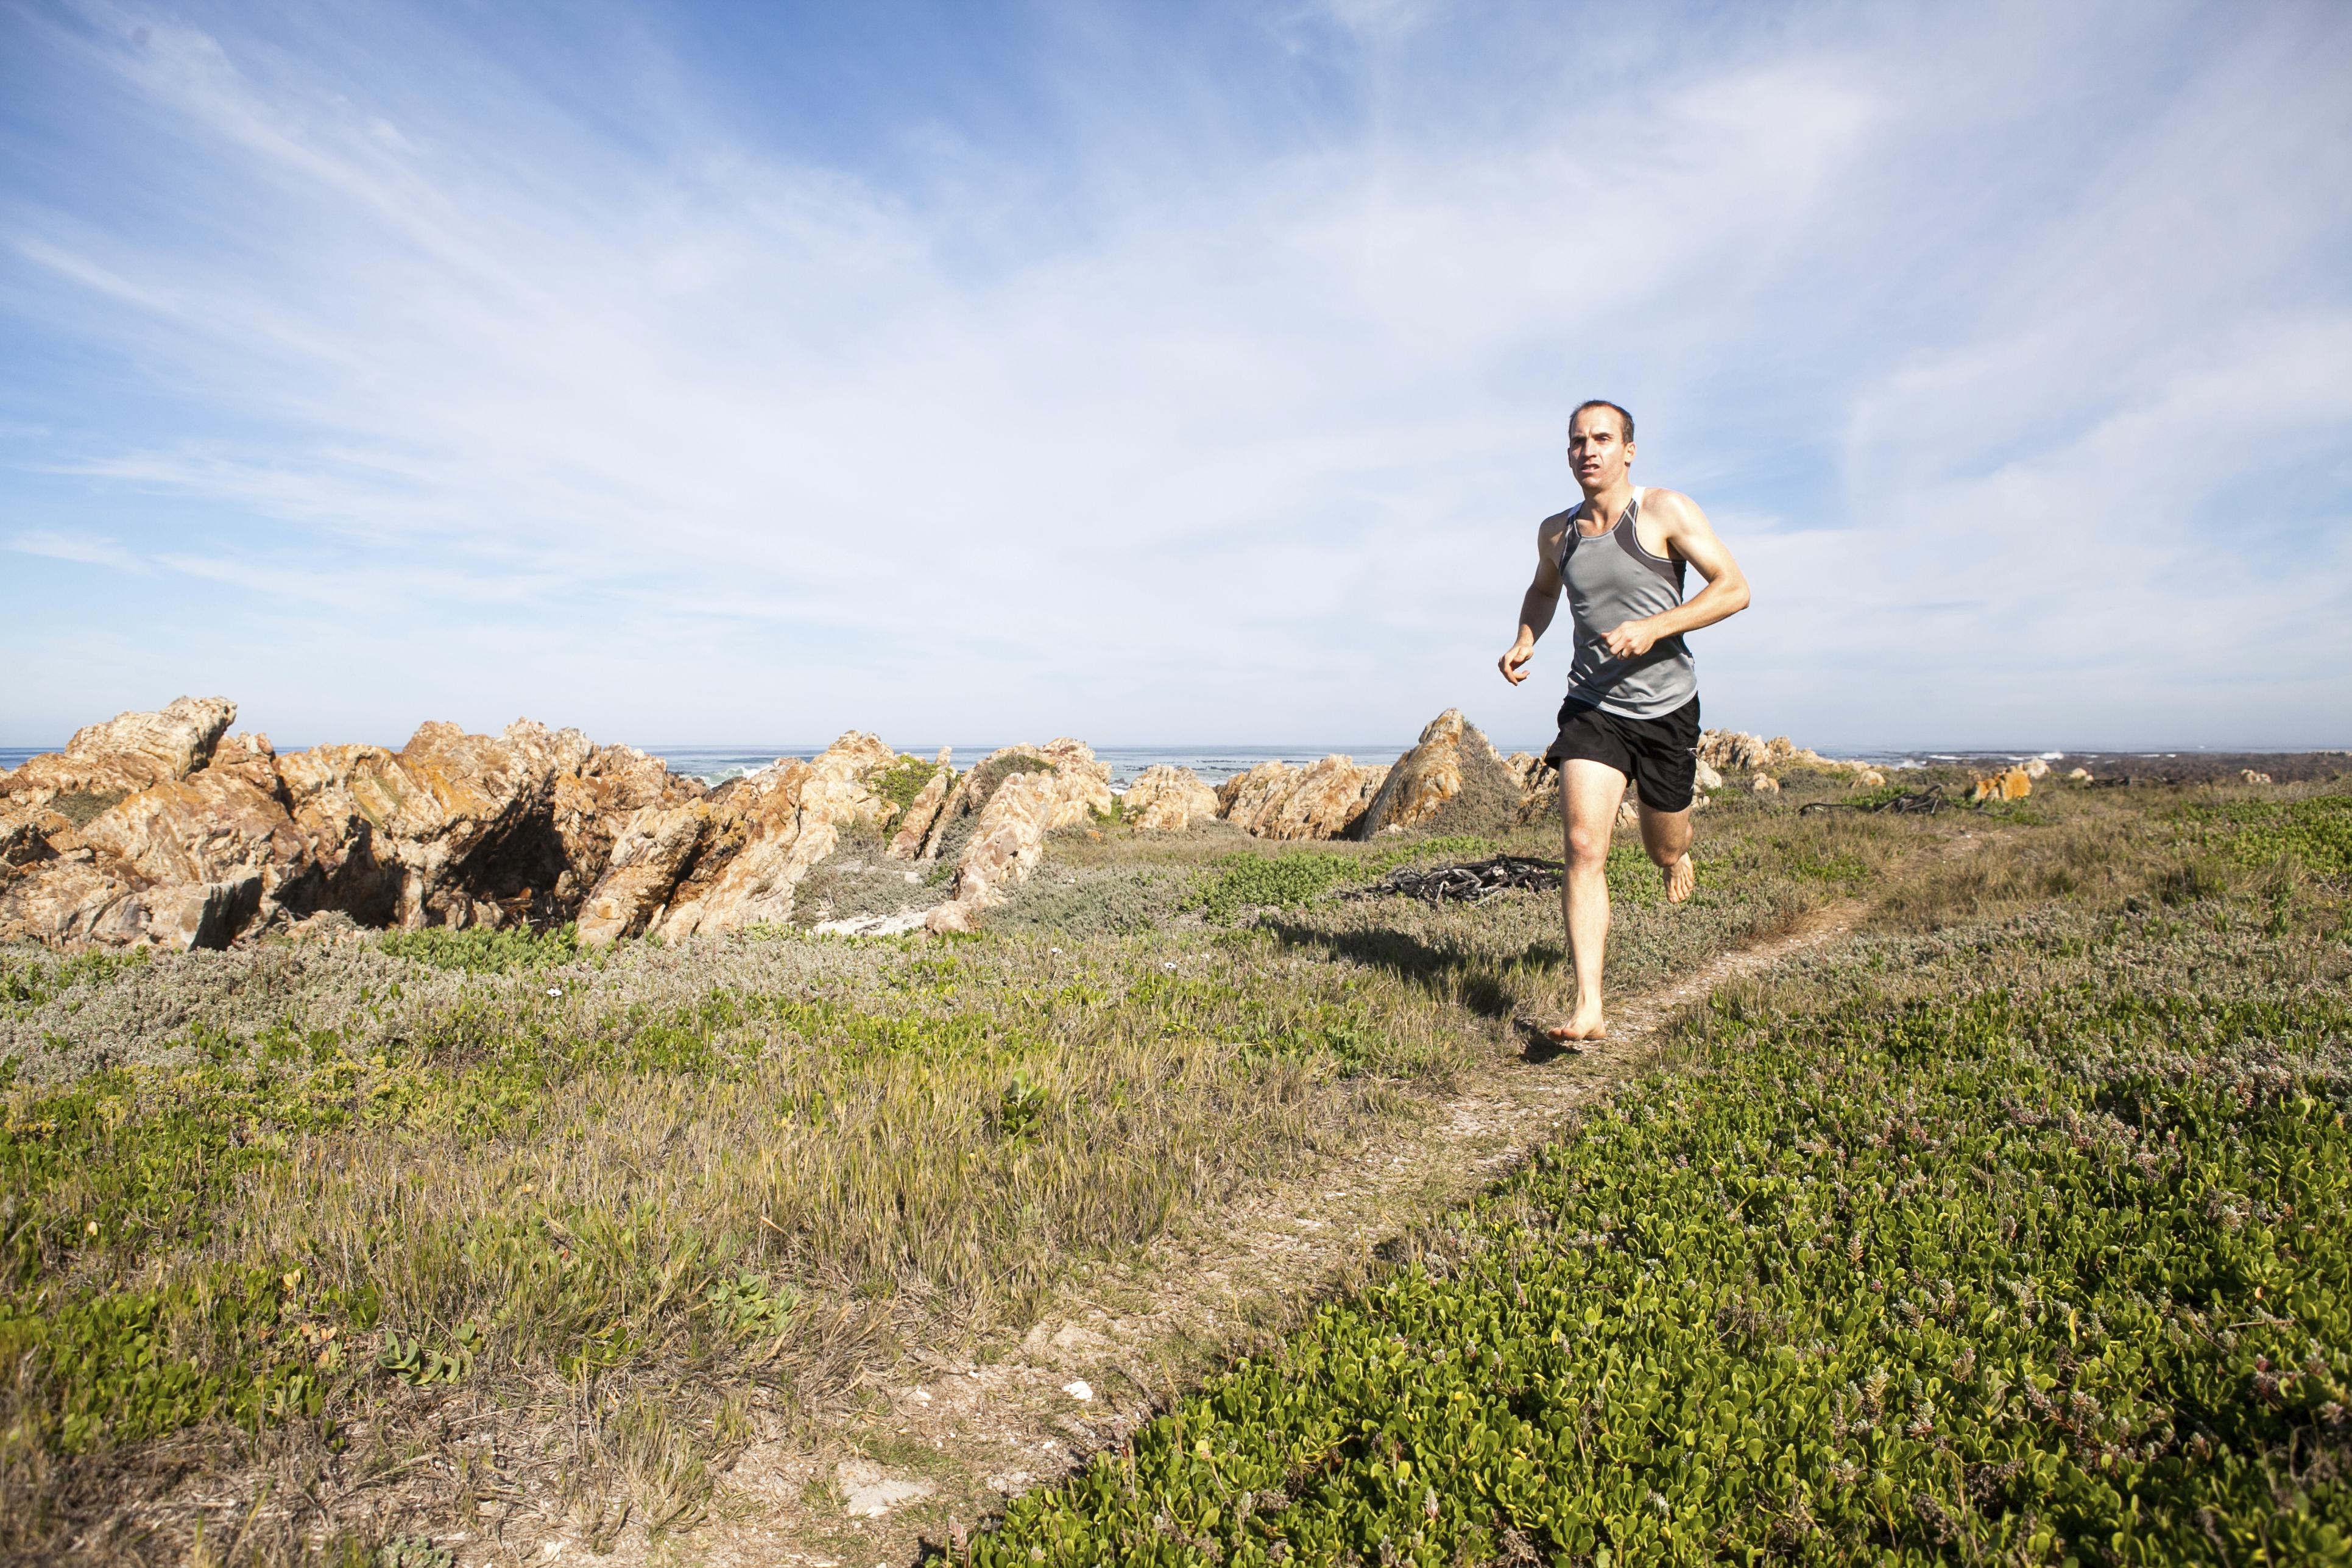 Running with no sole: The right way to approach barefoot running